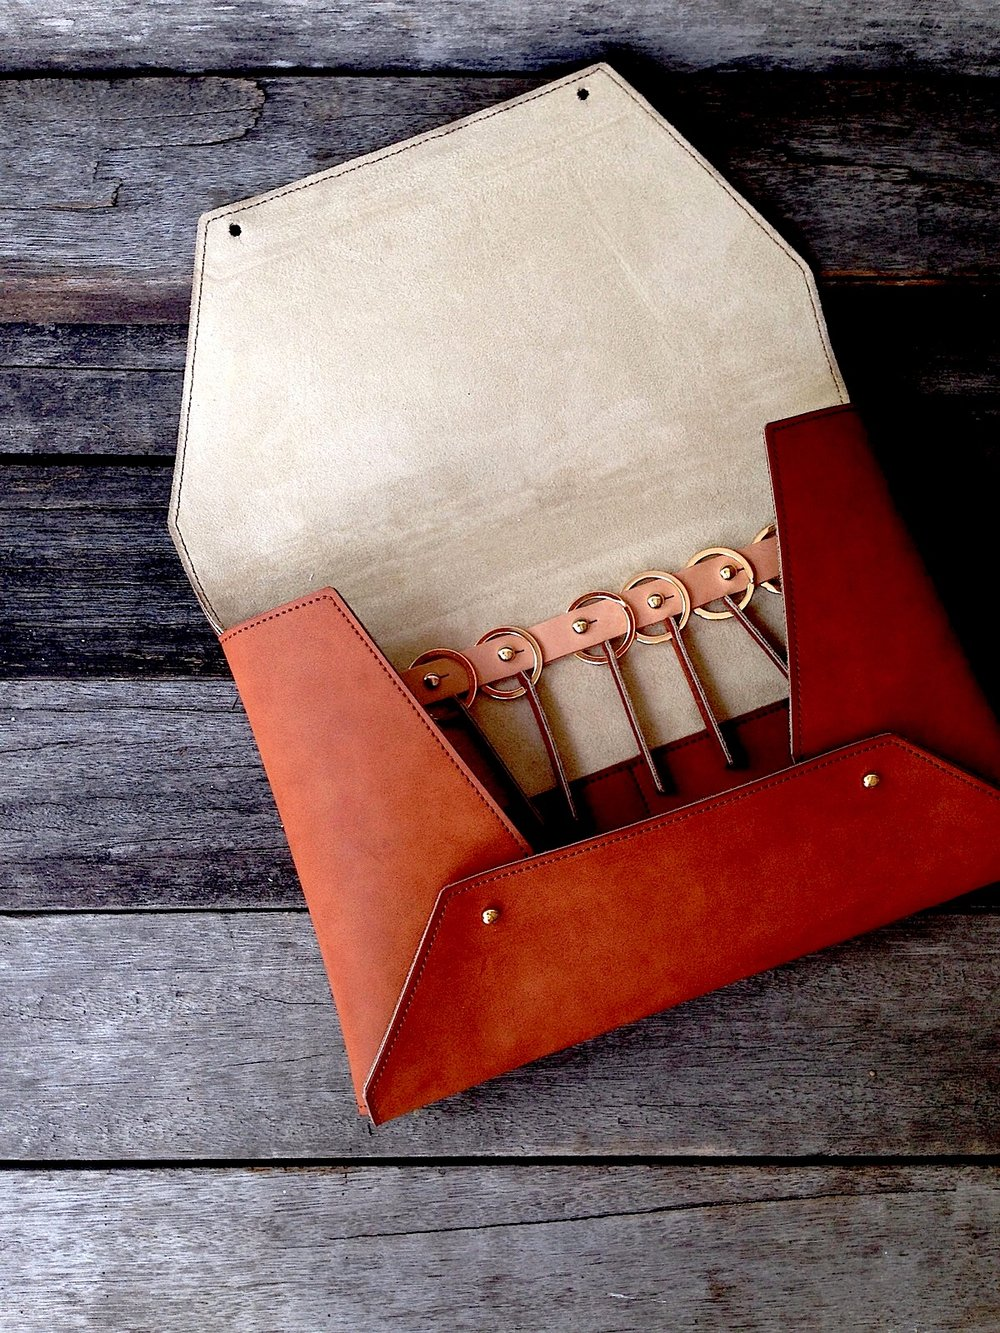 34life-corporate-events-workshops-gifts-products-designs-key-holder-set-brown-02.jpg